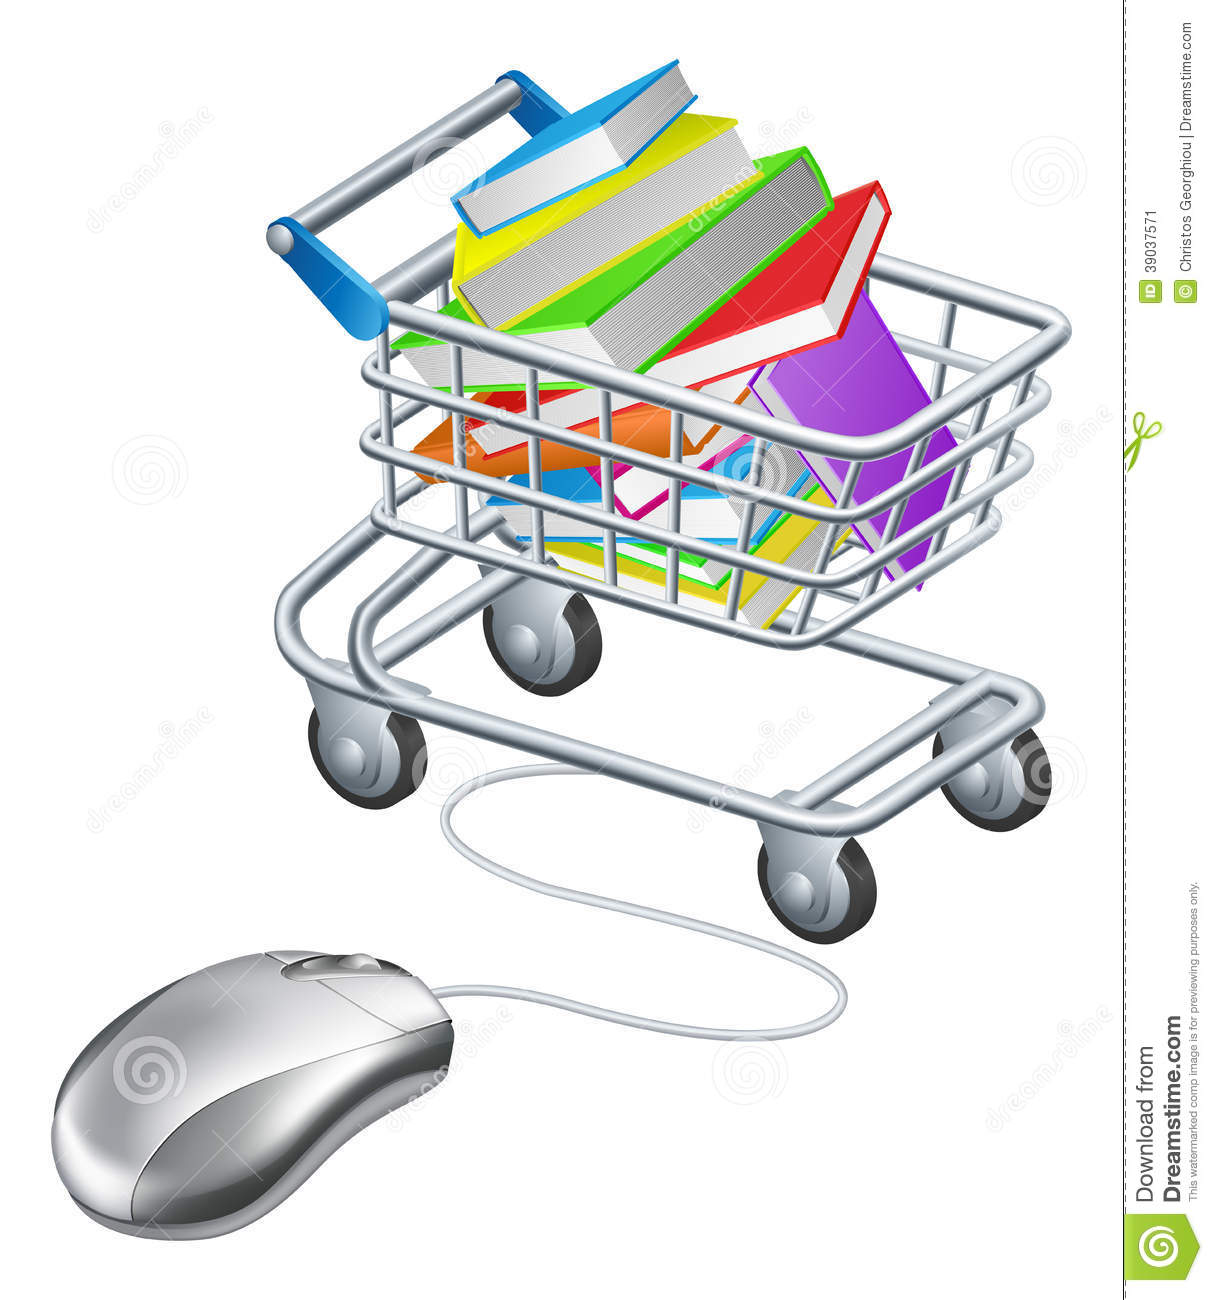 online shopping local literature Department of business studies aswo safari consumer foreign online purchasing uncertainty in the consumer-retailer relationship understanding of how consumers behave in foreign online purchasing contexts purchasing literature, where several scholars adopt a relational view on ex.